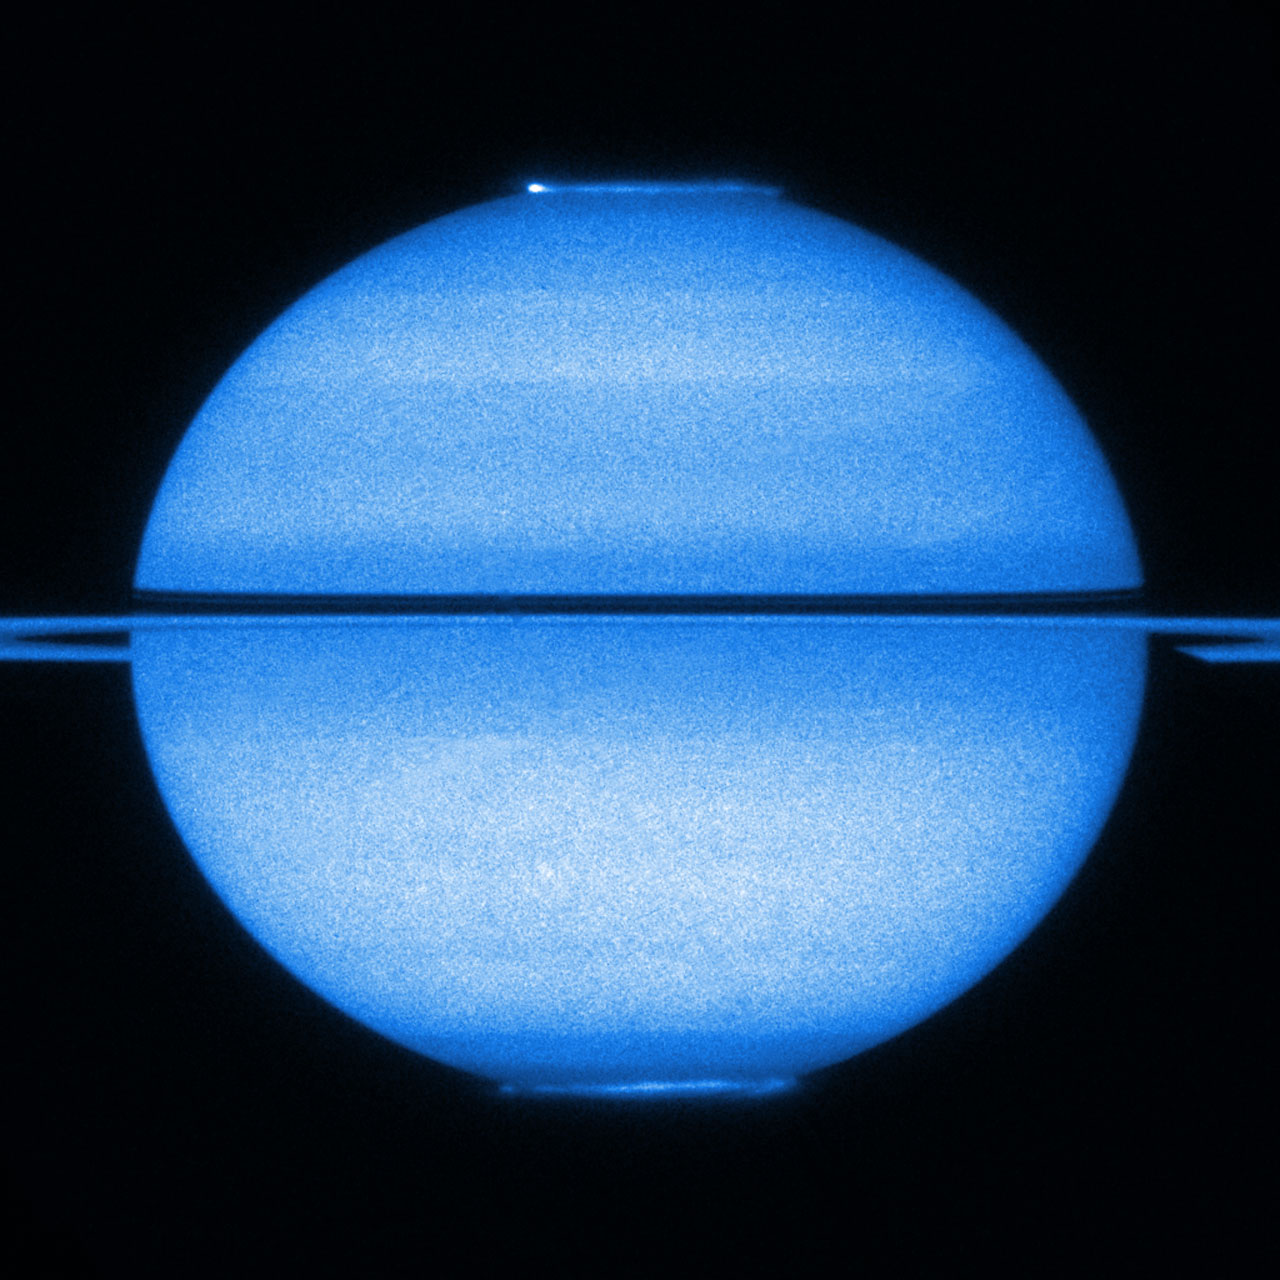 Hubble Captures Double Aurorae Light Show on SaturnView Of Sun From Saturn